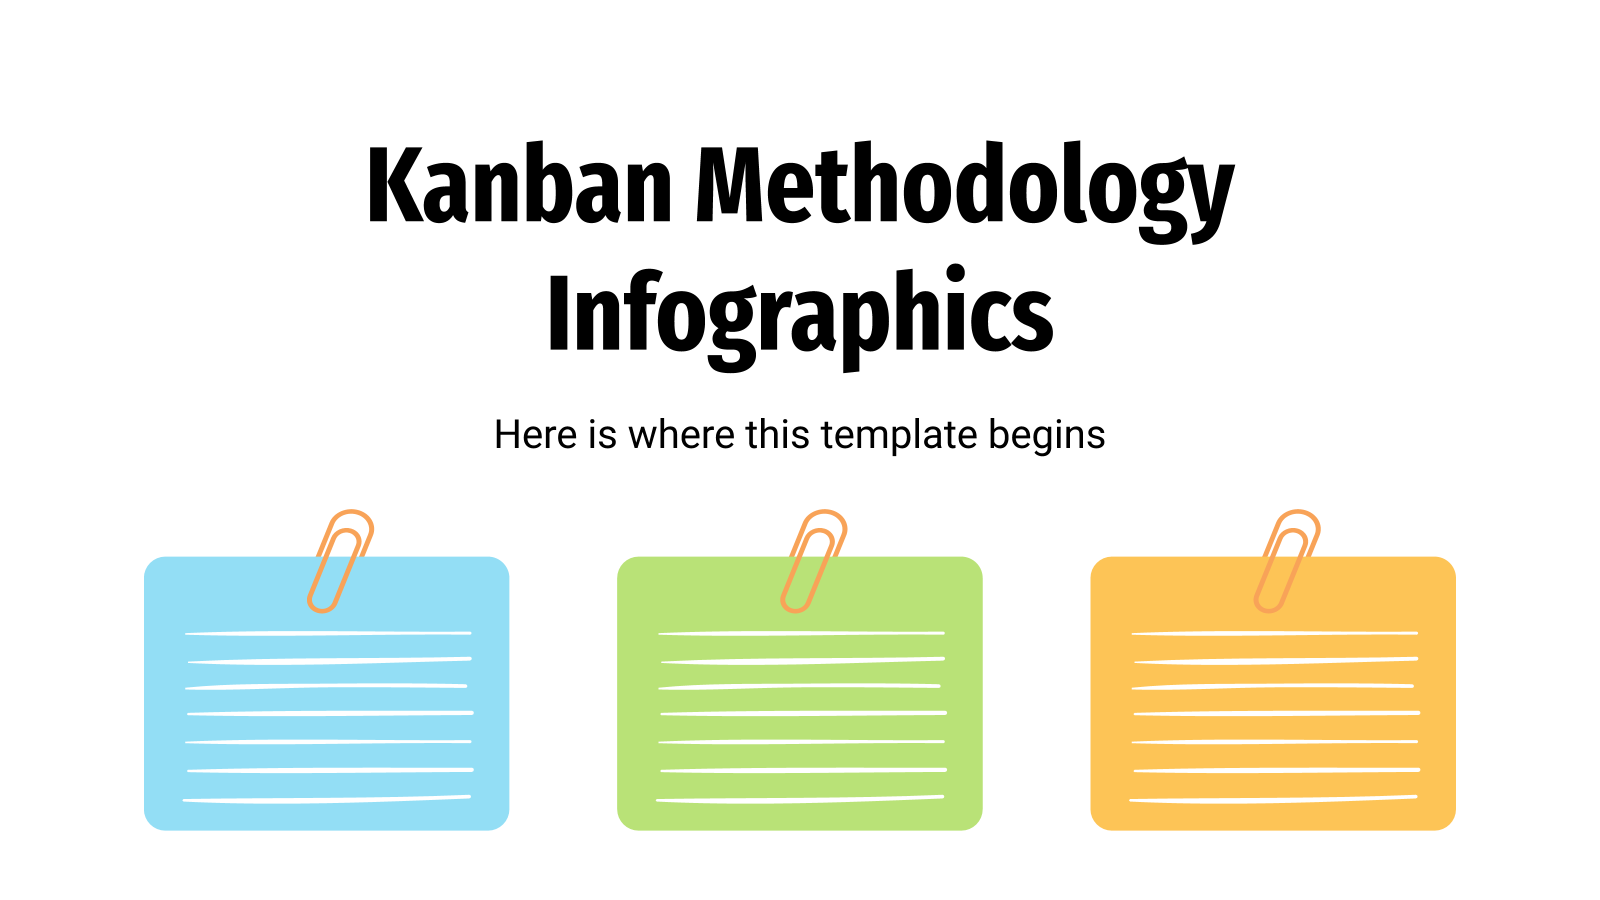 Kanban Methodology Infographics presentation template